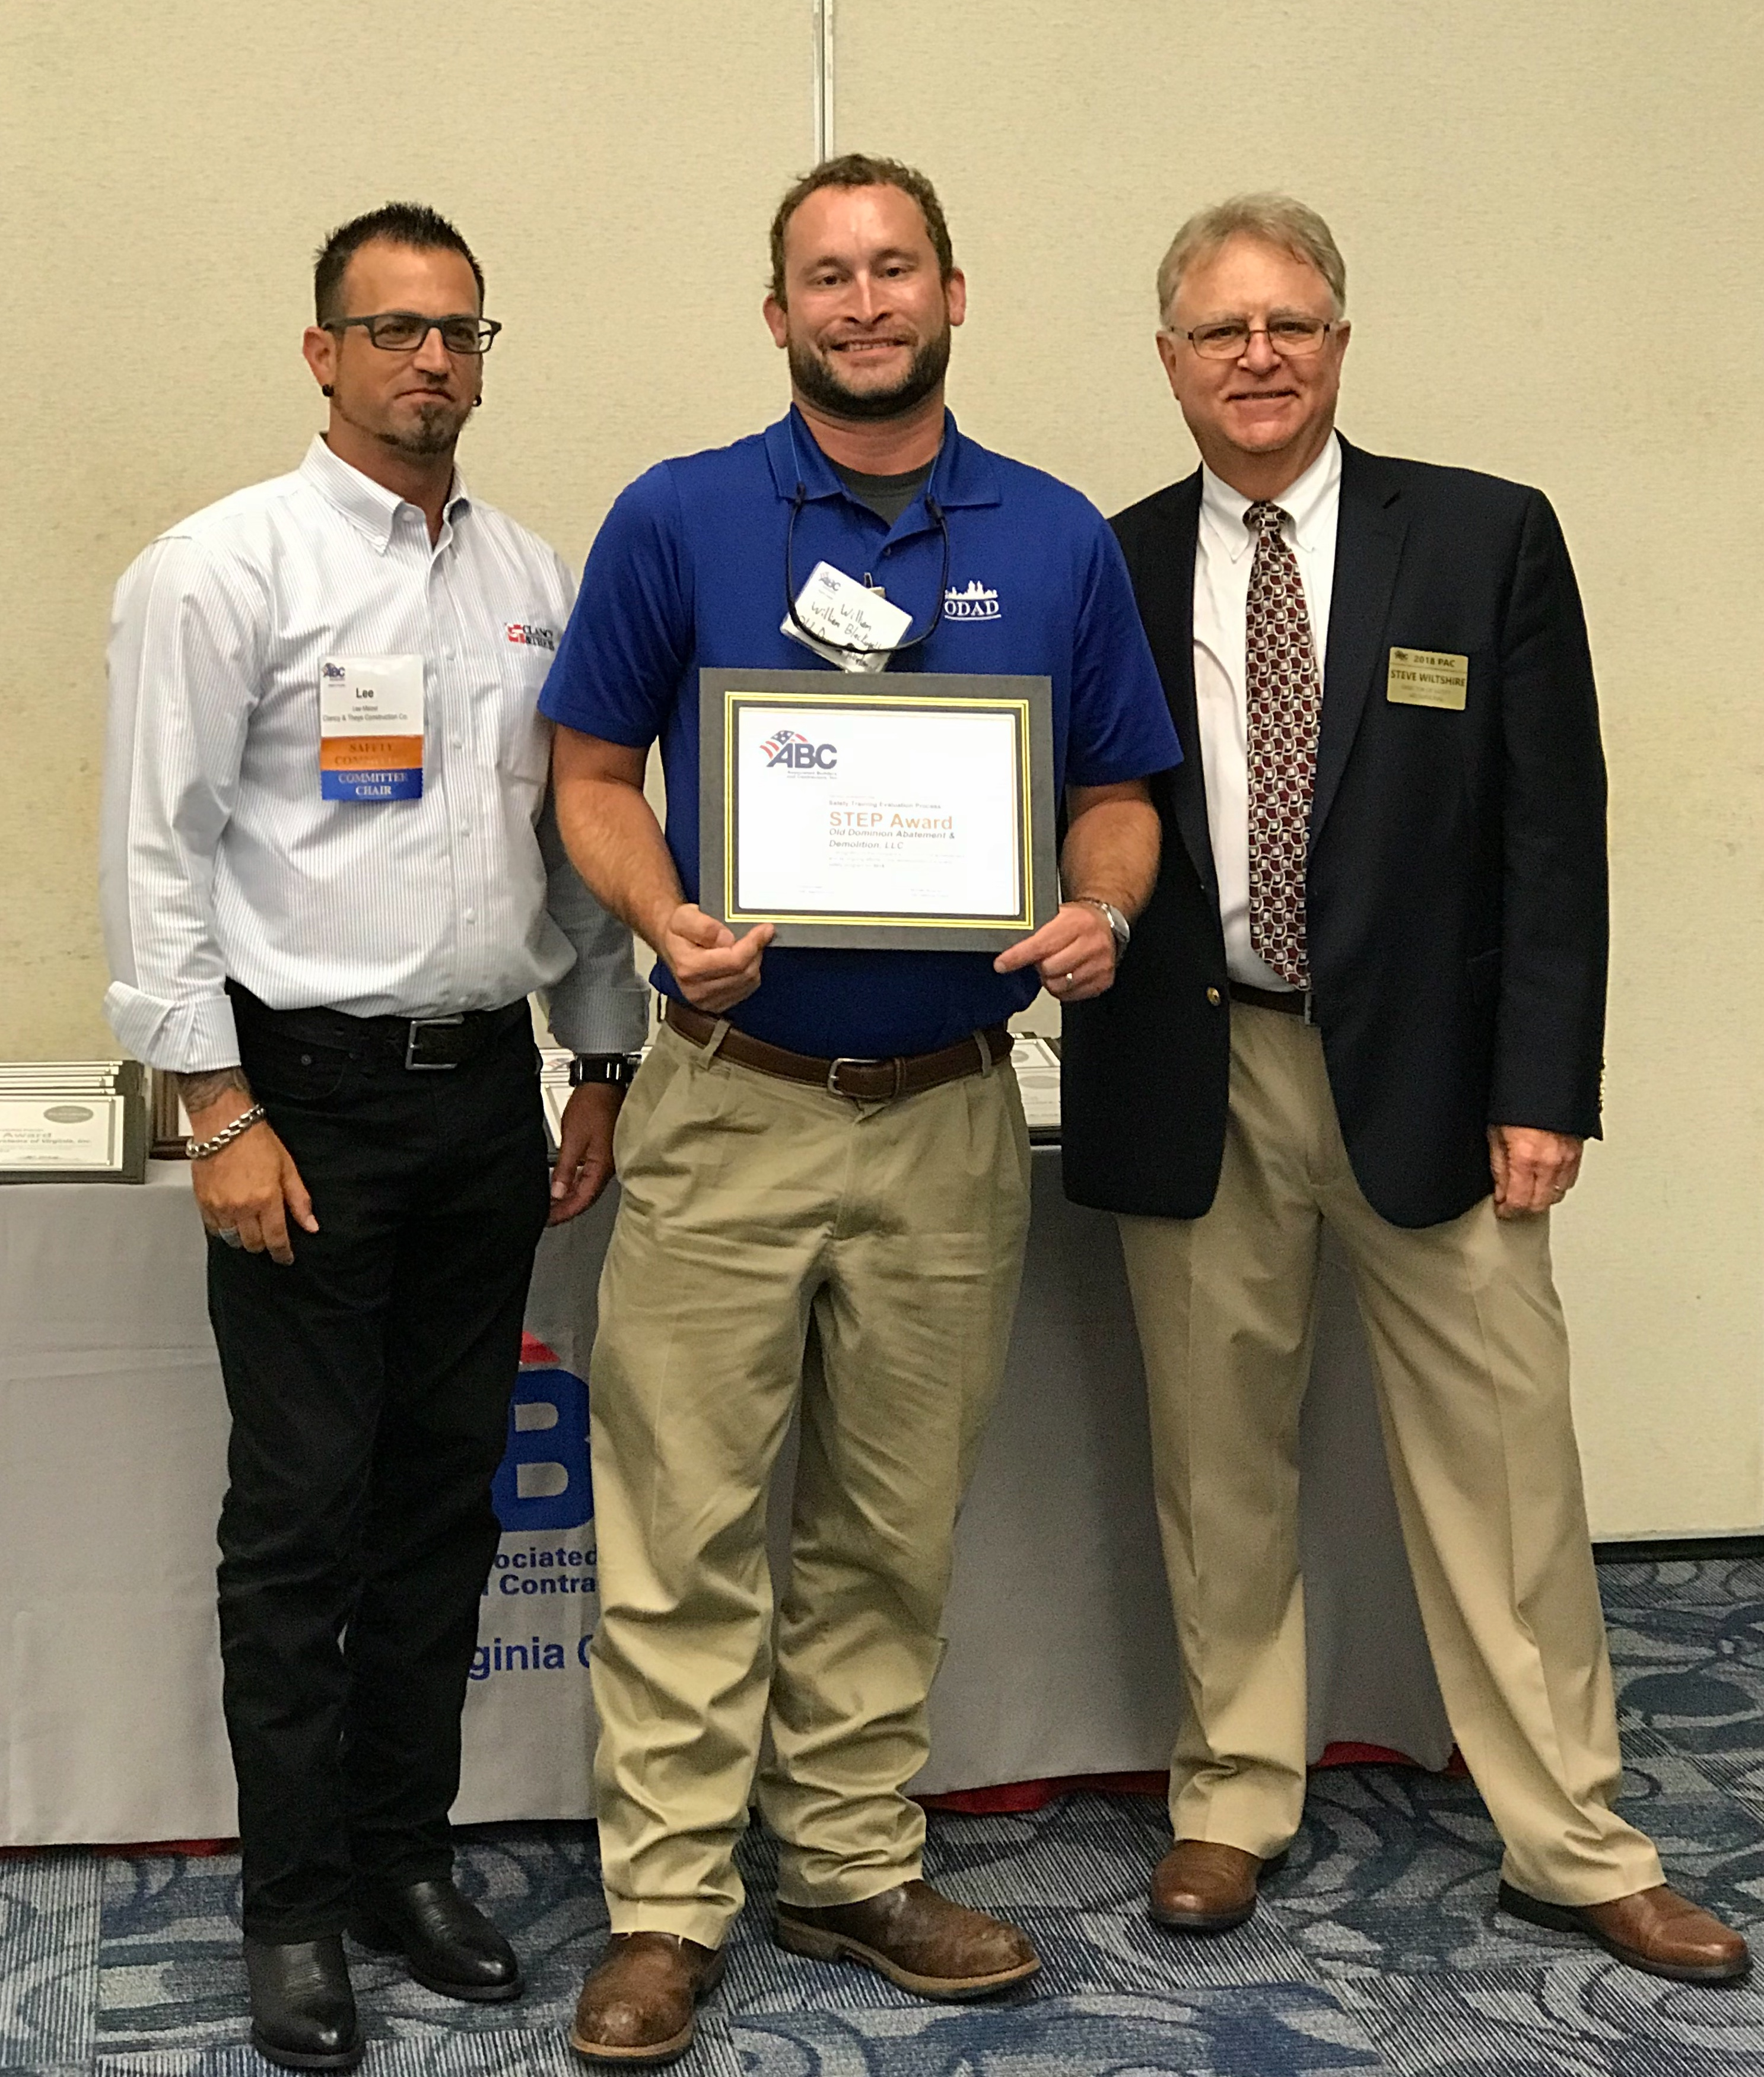 ODI Earns Top Honors for Safety - Old Dominion Insulation